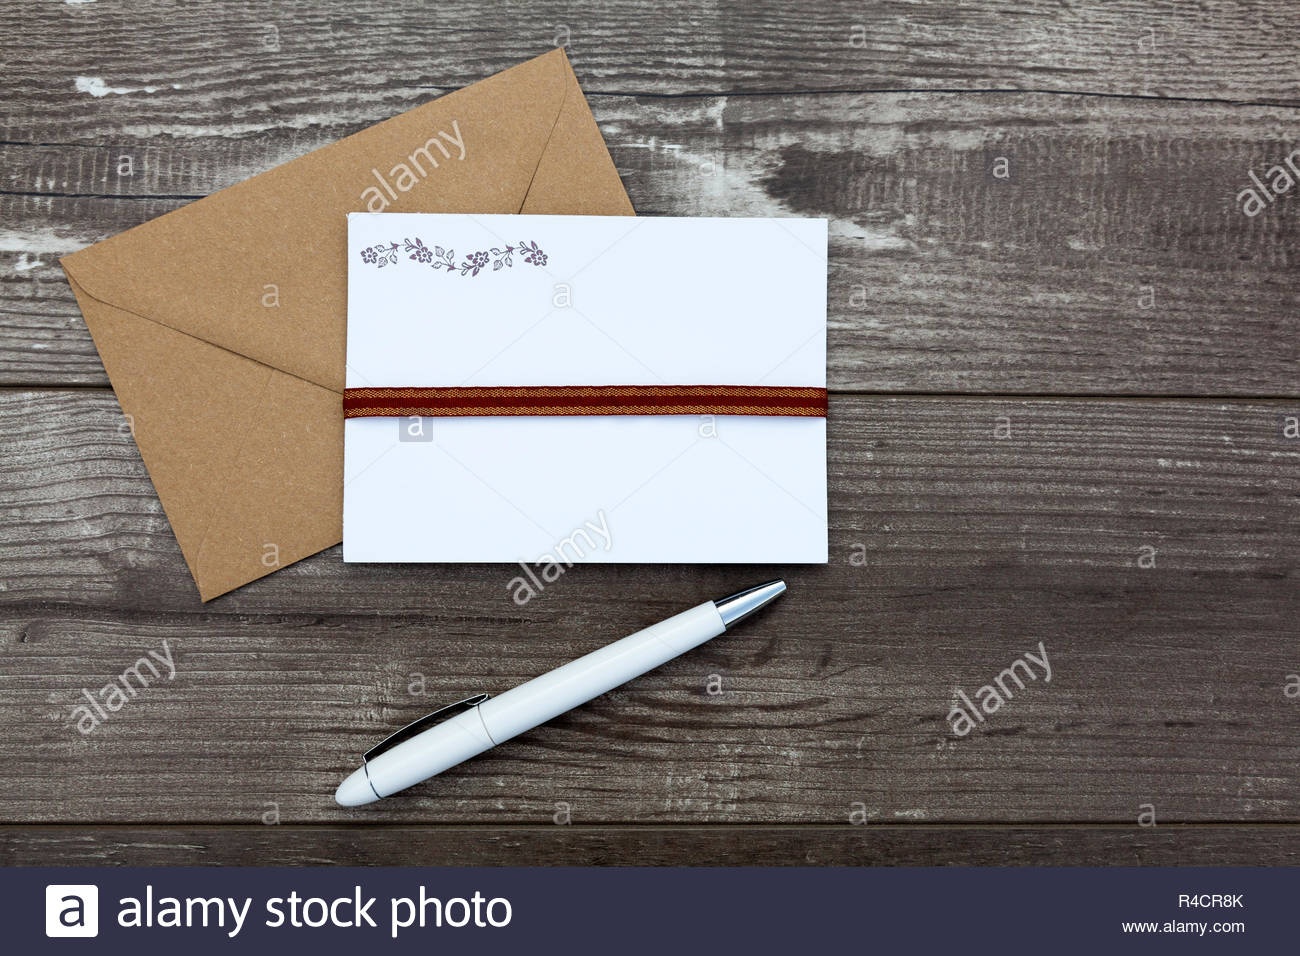 Letter writing concept - Pen, writing paper and envelope on a wooden background - Stock Image